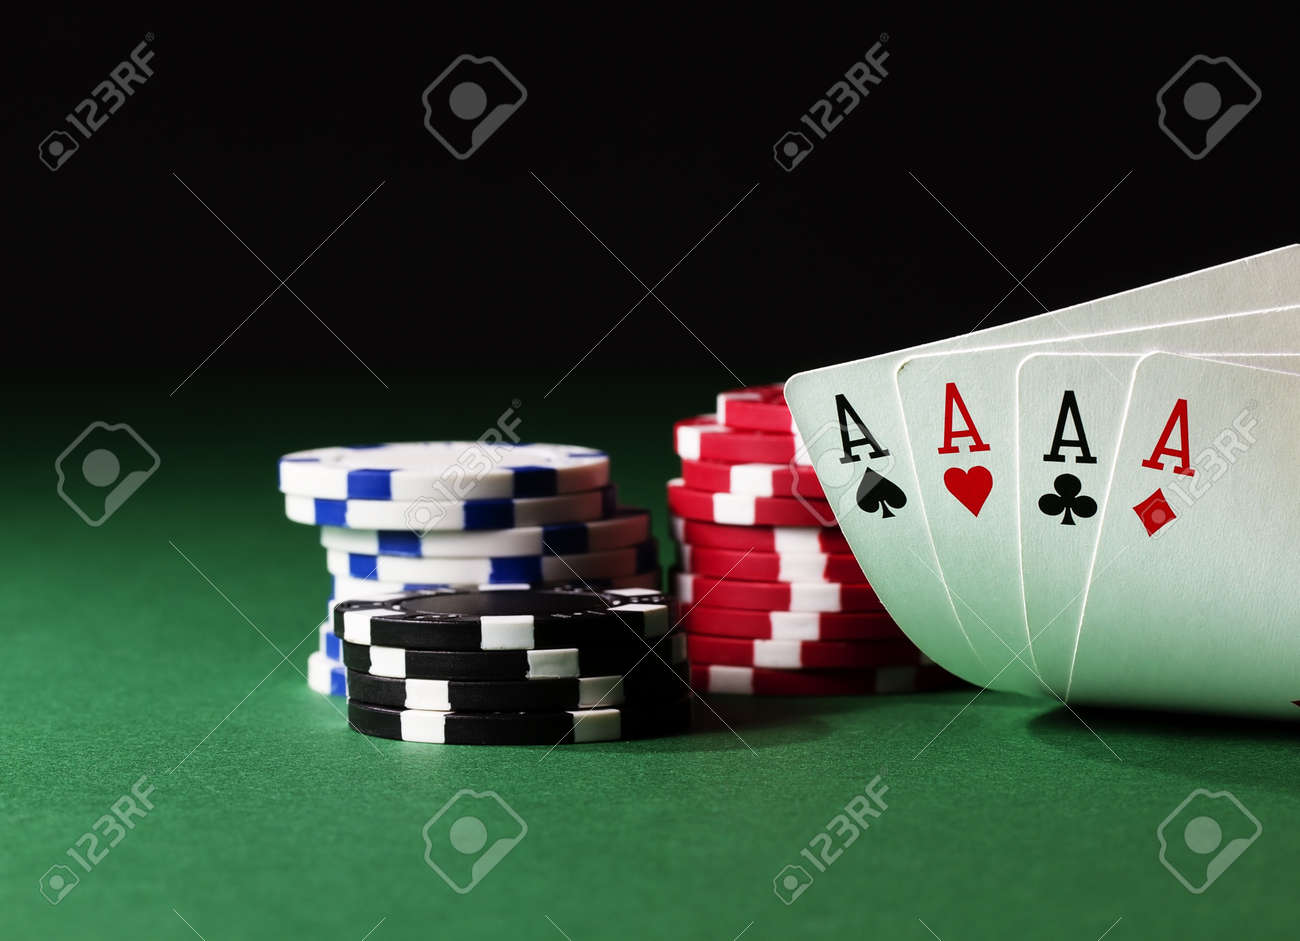 Poker table background - Poker Table Background Four Aces High On Green Table With Chips On Black Background Stock